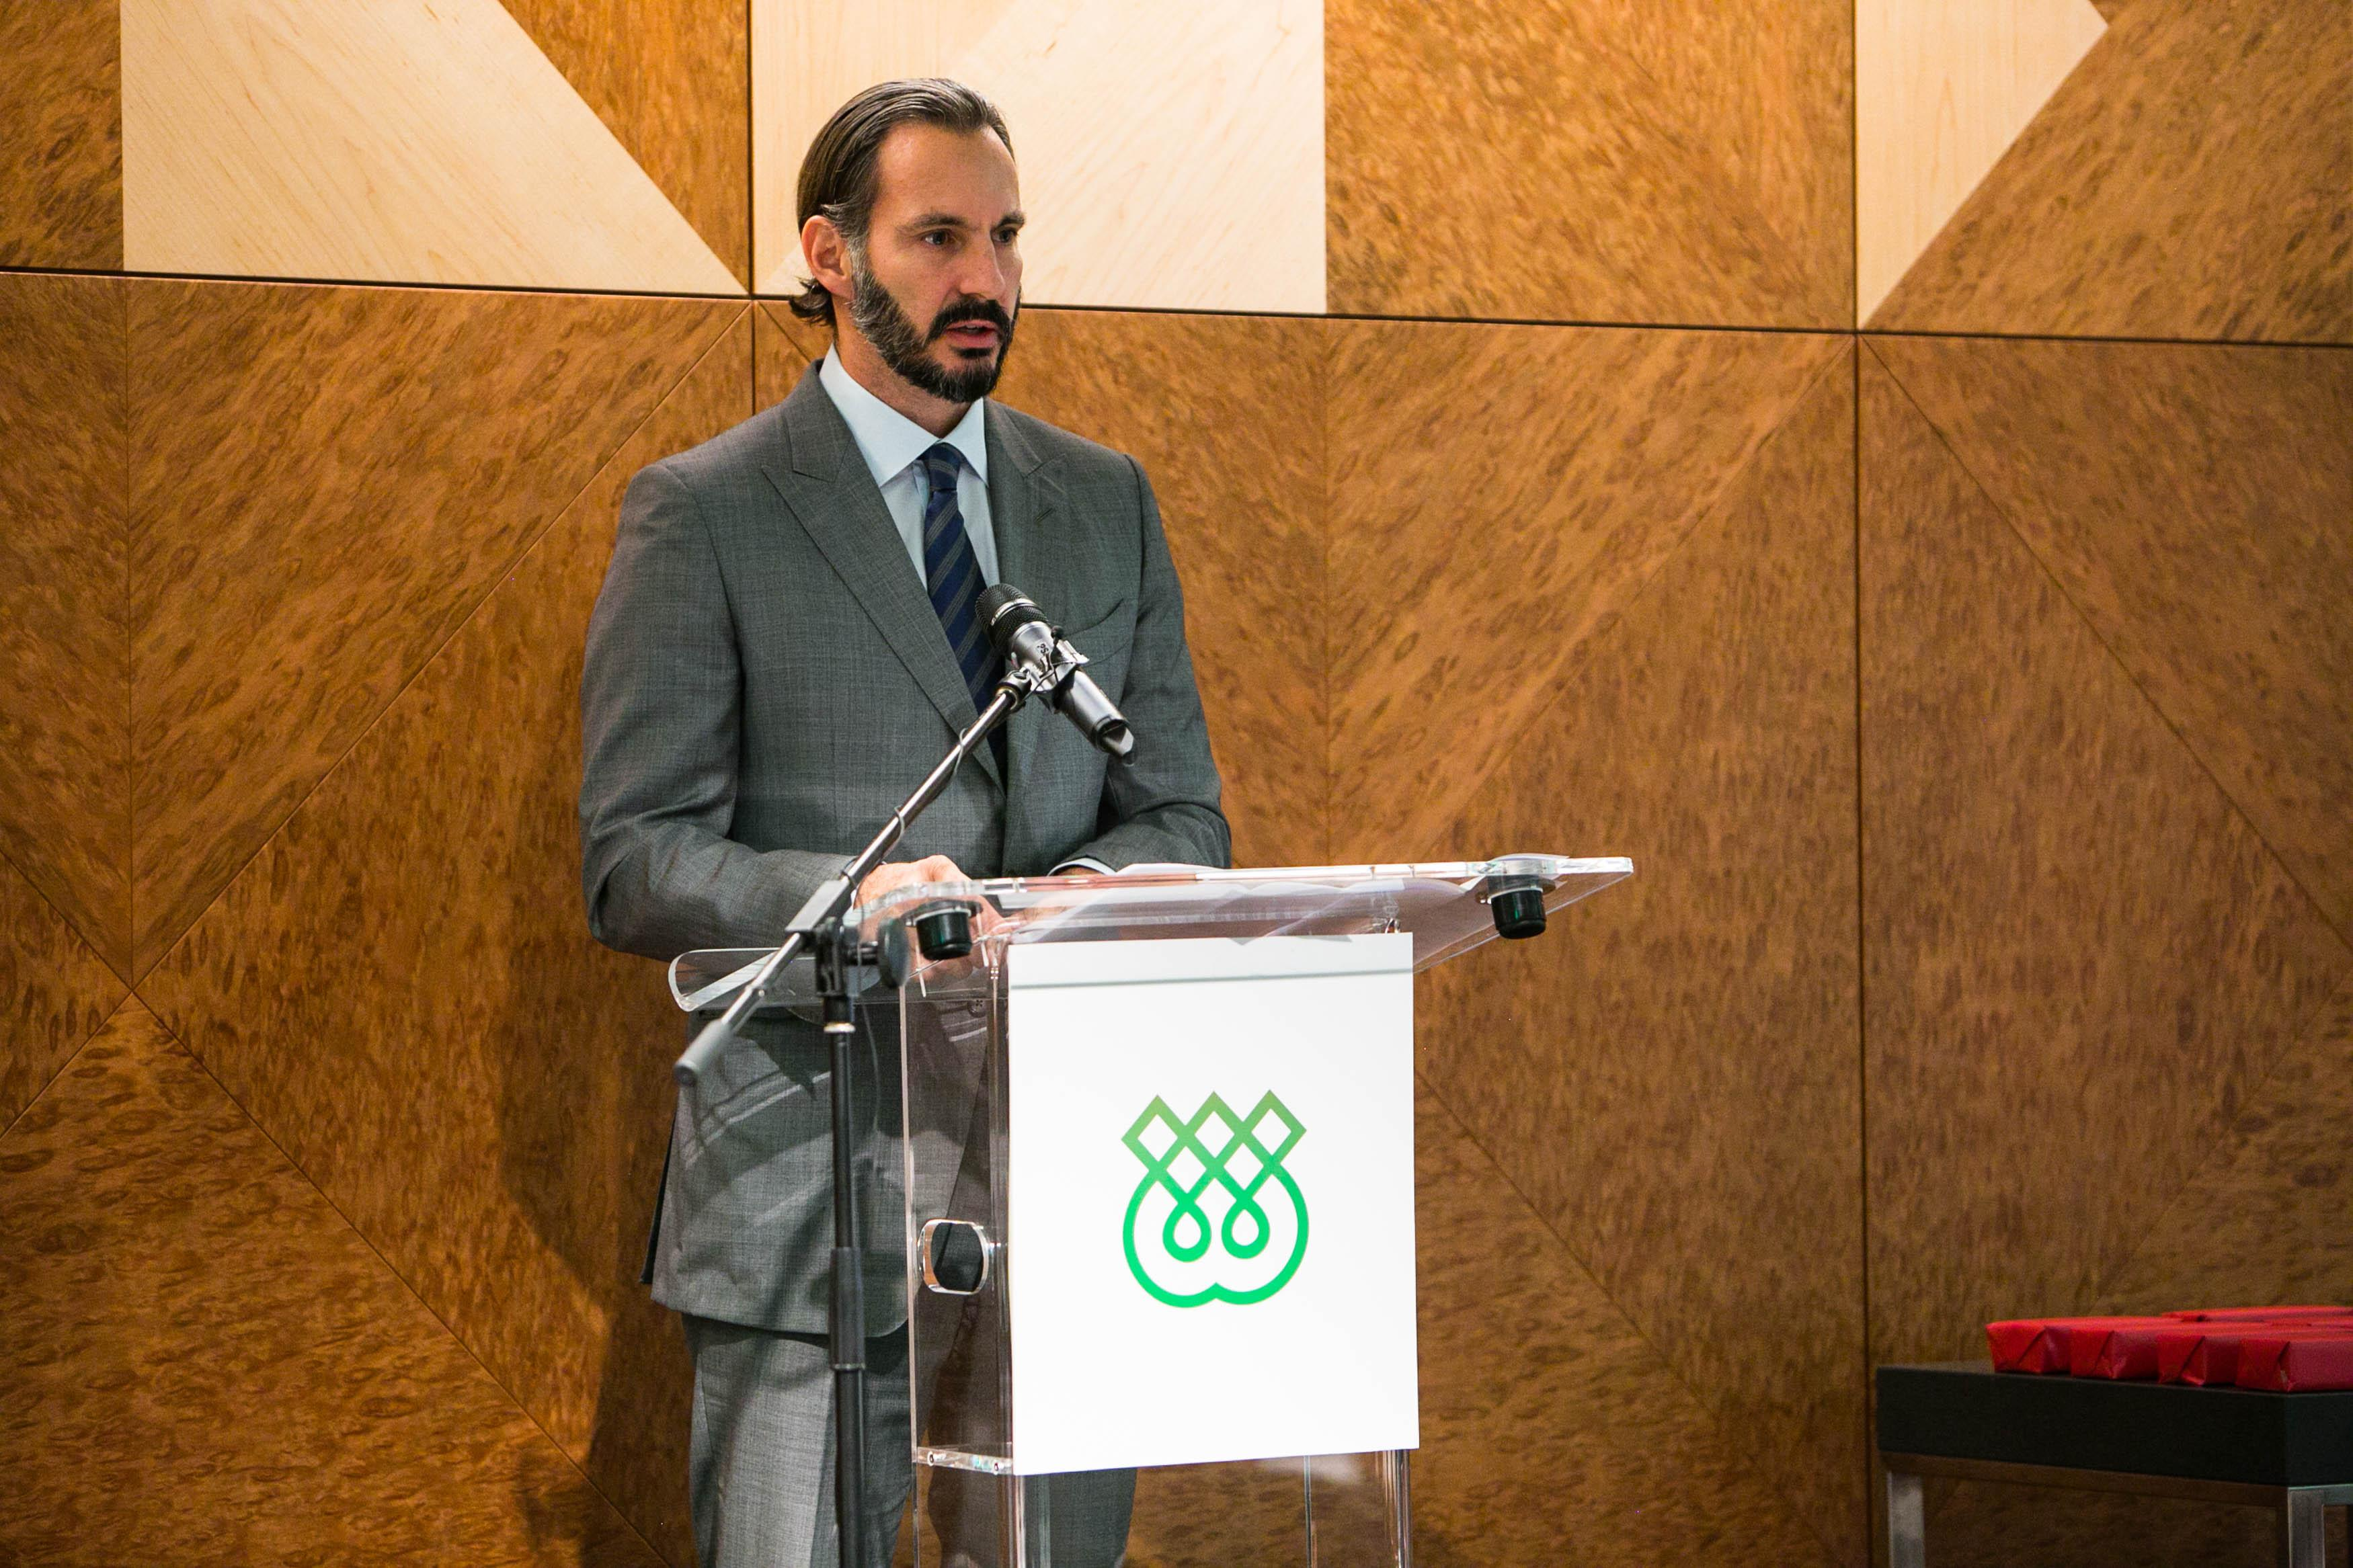 Prince Rahim Aga Khan addressing staff and students during the IIS' 40th anniversary celebration.